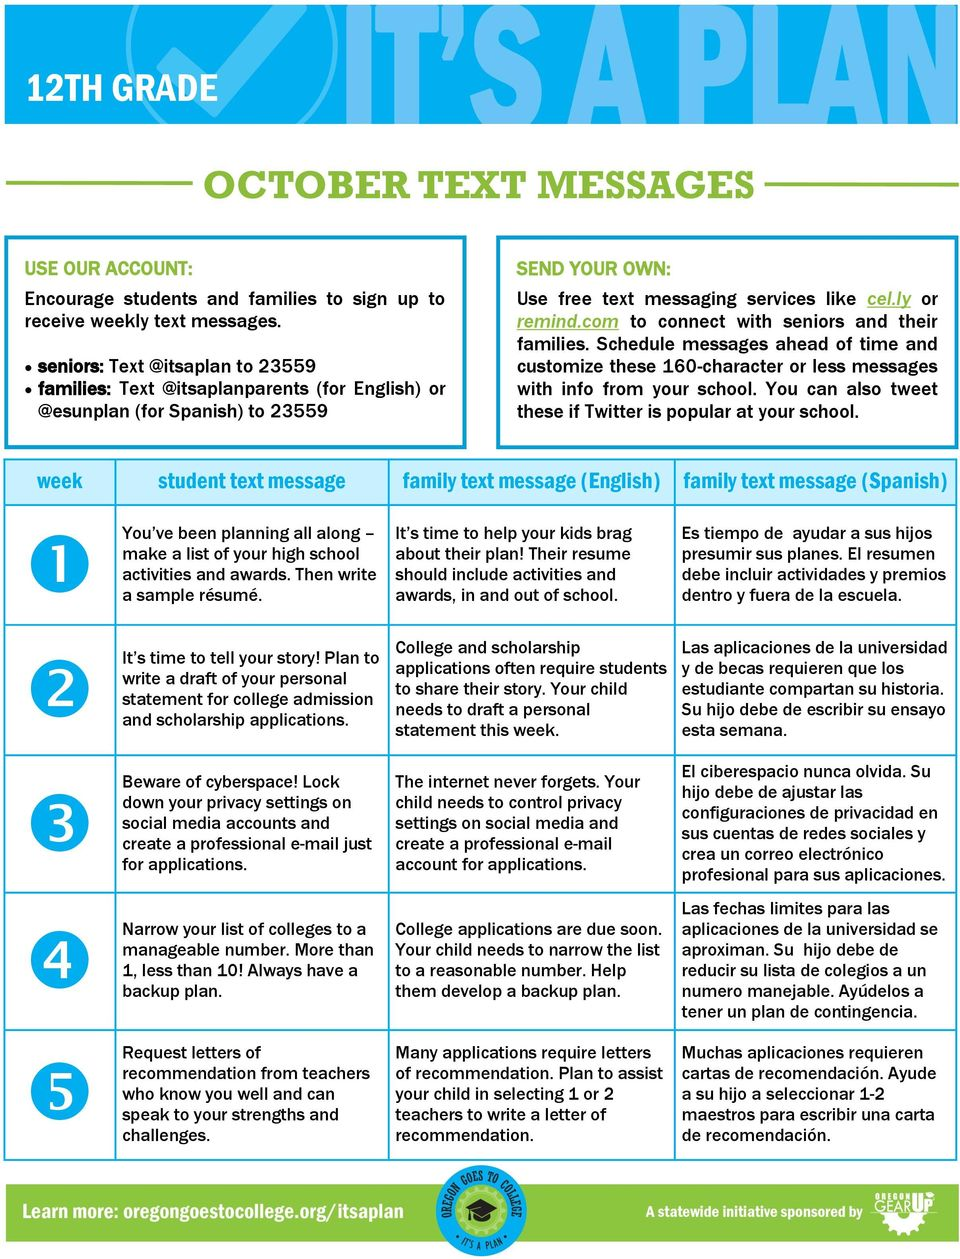 com to connect with seniors and their families. Schedule messages ahead of time and customize these 160-character or less messages with info from your school.